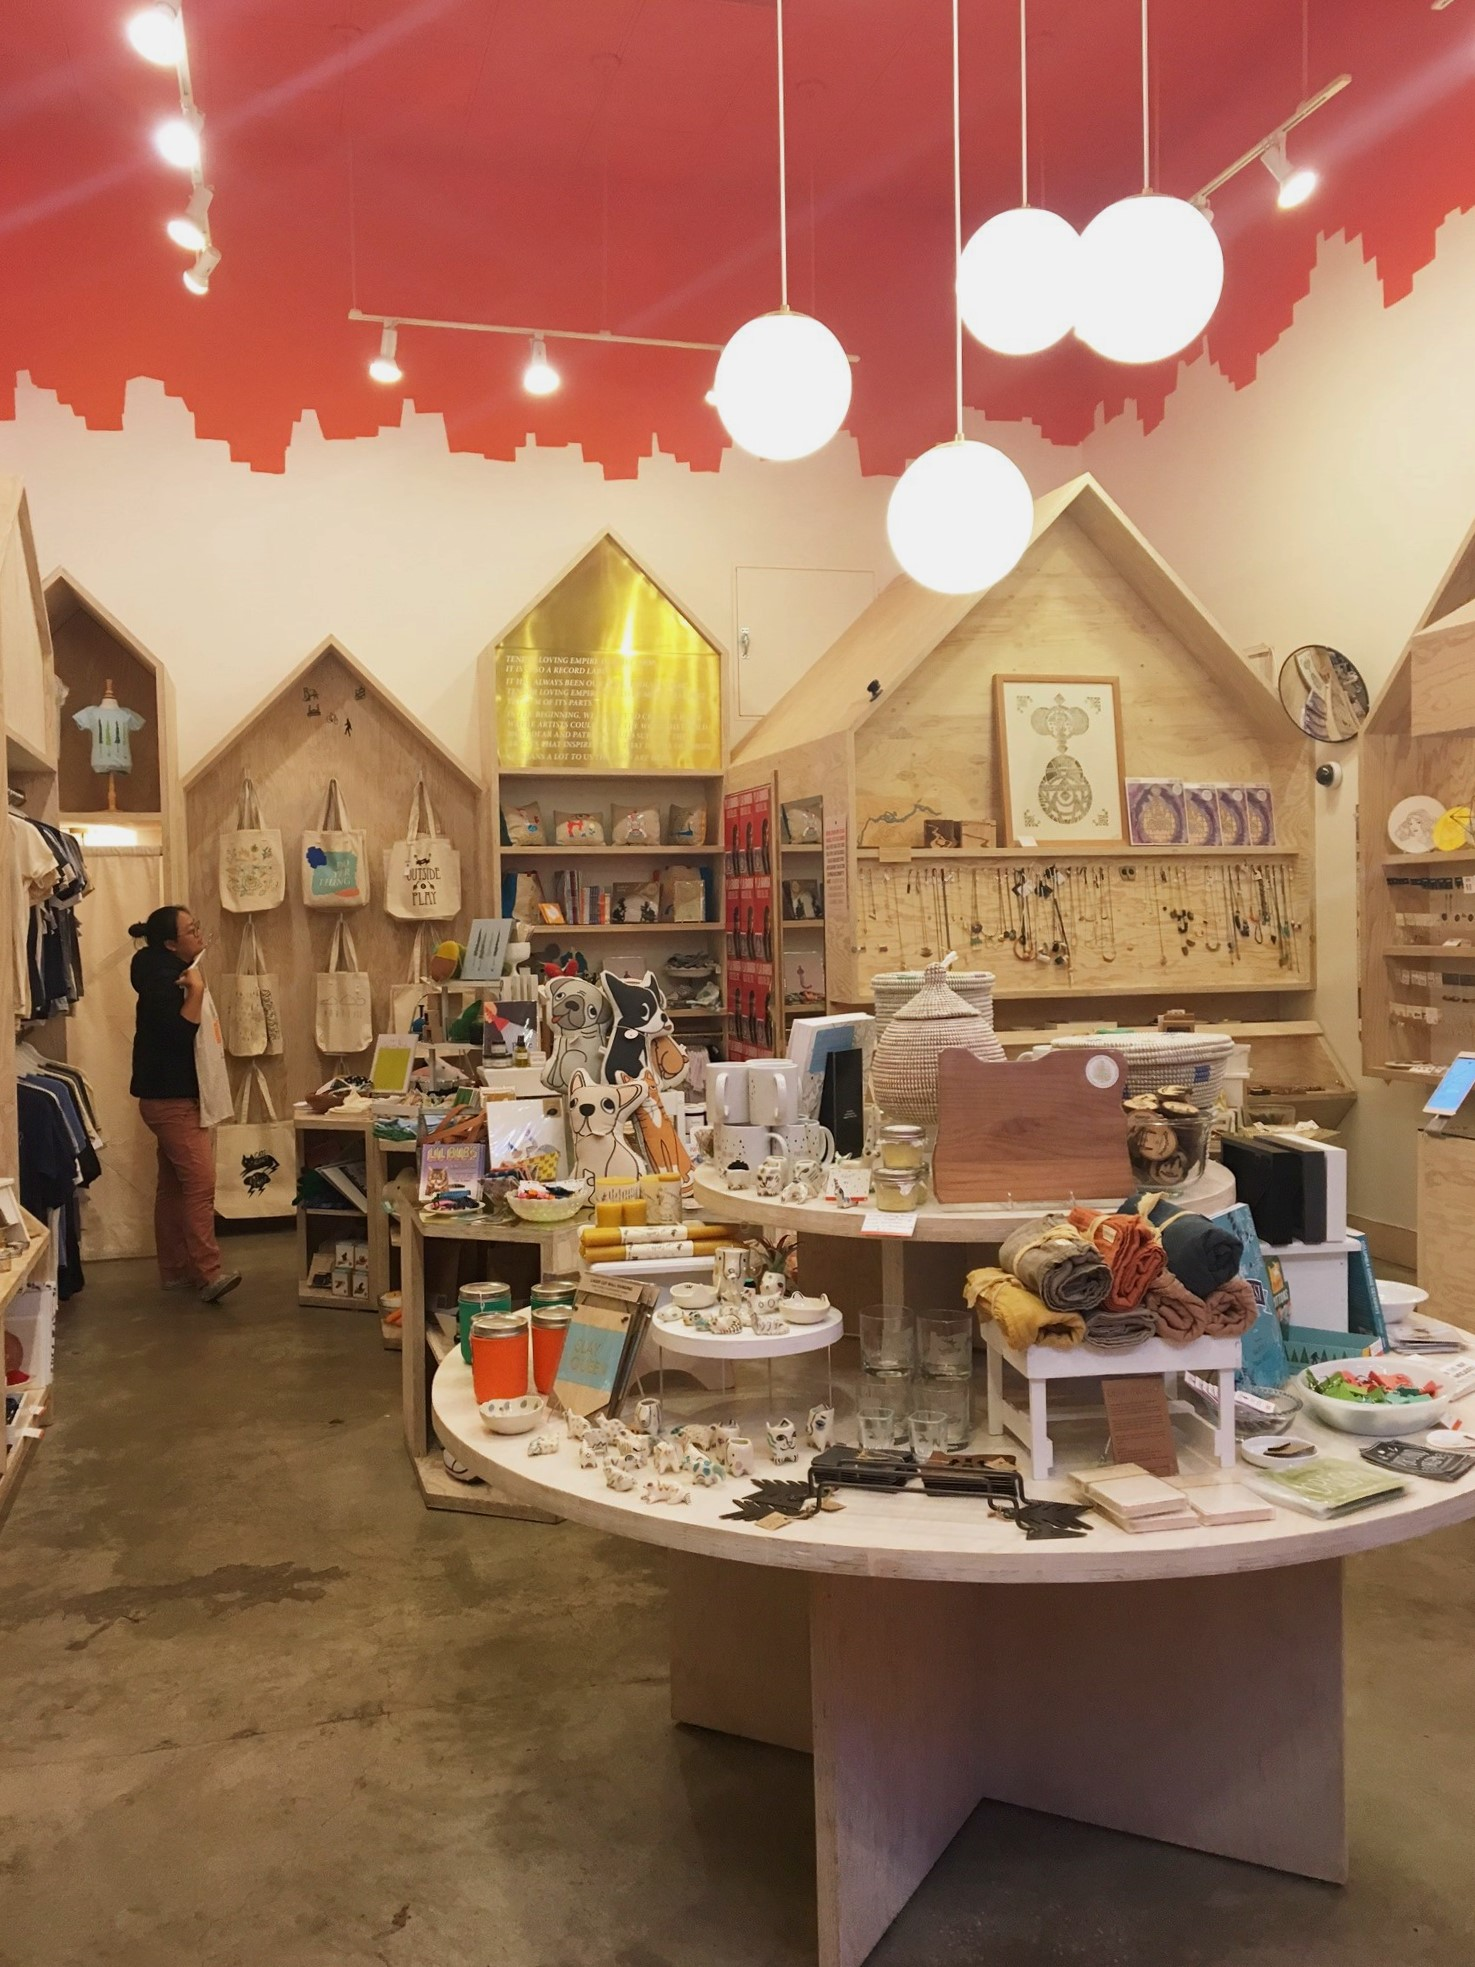 Another shop we visited was  Tender Loving Empire . It's yet another store that focuses on handmade goods (are you spotting a trend here?). It's a very happy and whimsical store filled with all sorts of knick knacks. We picked up a sweet little gift for our friends' newborn.